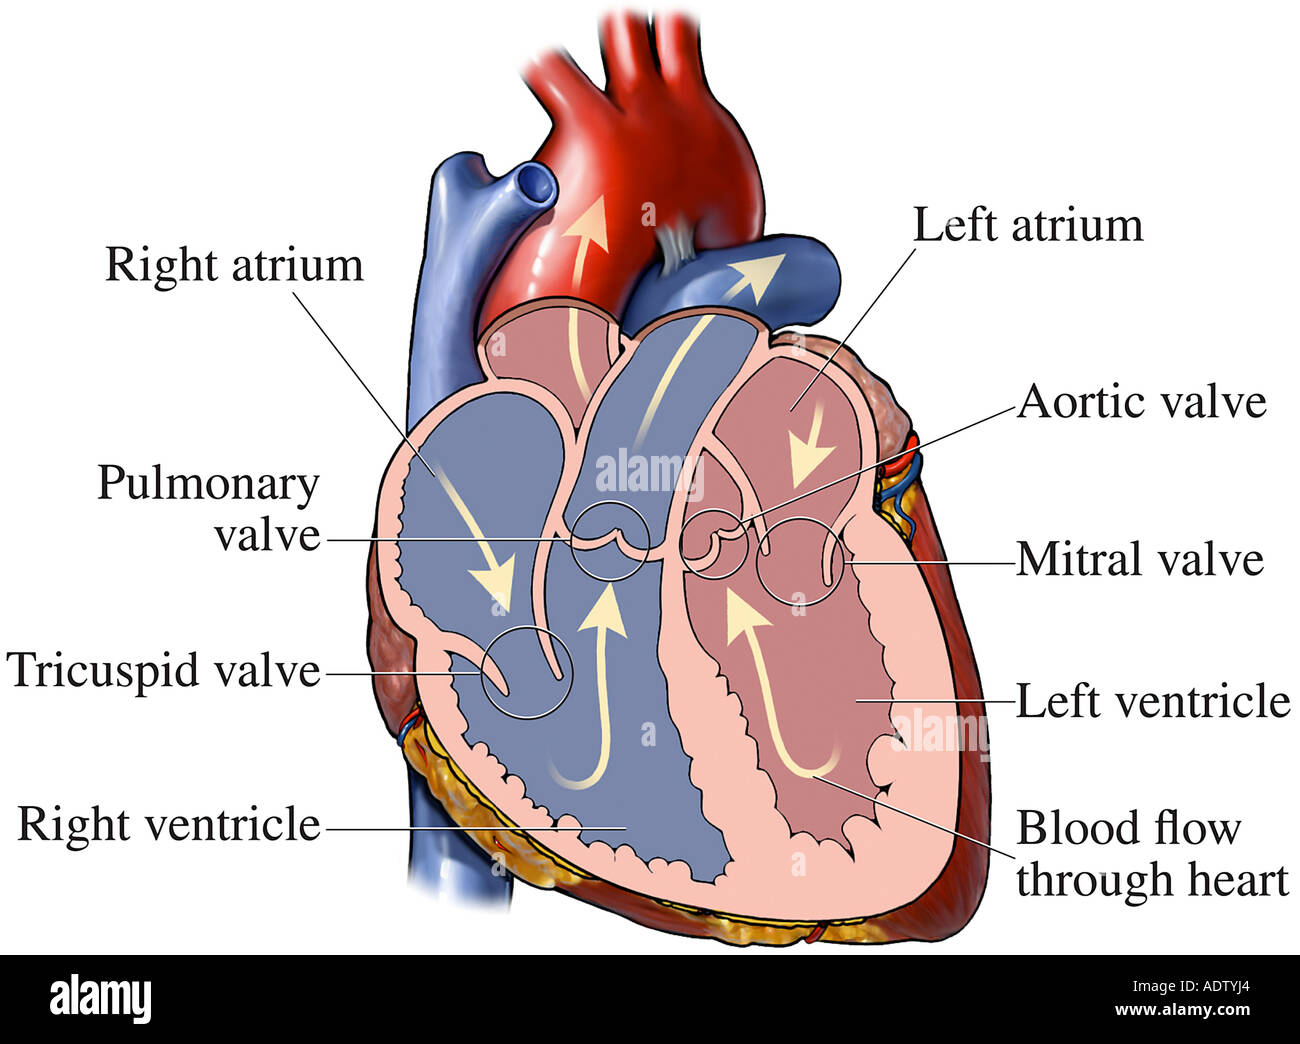 Heart Valves Stock Photos & Heart Valves Stock Images - Alamy